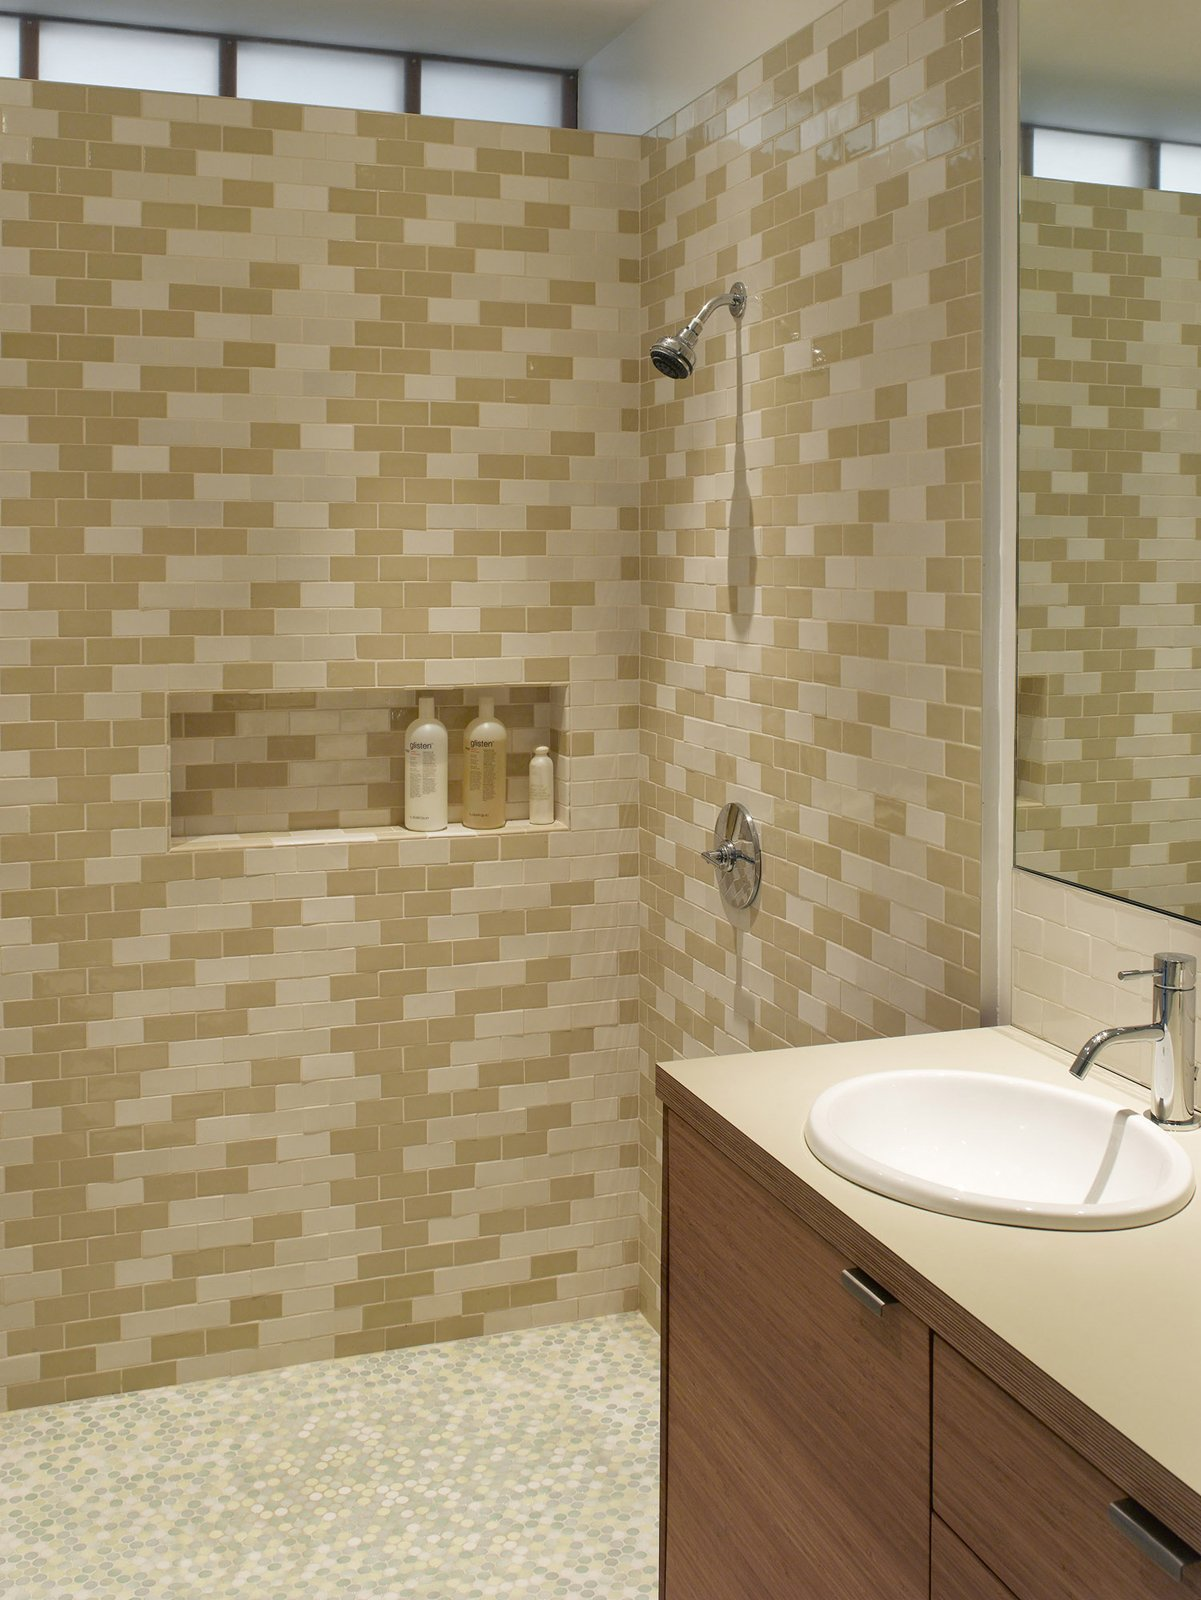 """The Ellers wanted their main bathroom to be lined with tiles but the expense was a limiting factor. To overcome this, Katie made frequent trips across the Golden Gate Bridge to Heath Ceramics in Sausalito to purchase seconds. """"She collected boxes and boxes over time, and then we arranged what she had in this pattern,"""" Willmer says.  Photo by   Ken Gutmaker  Photo 12 of 14 in Park Street Renovation"""